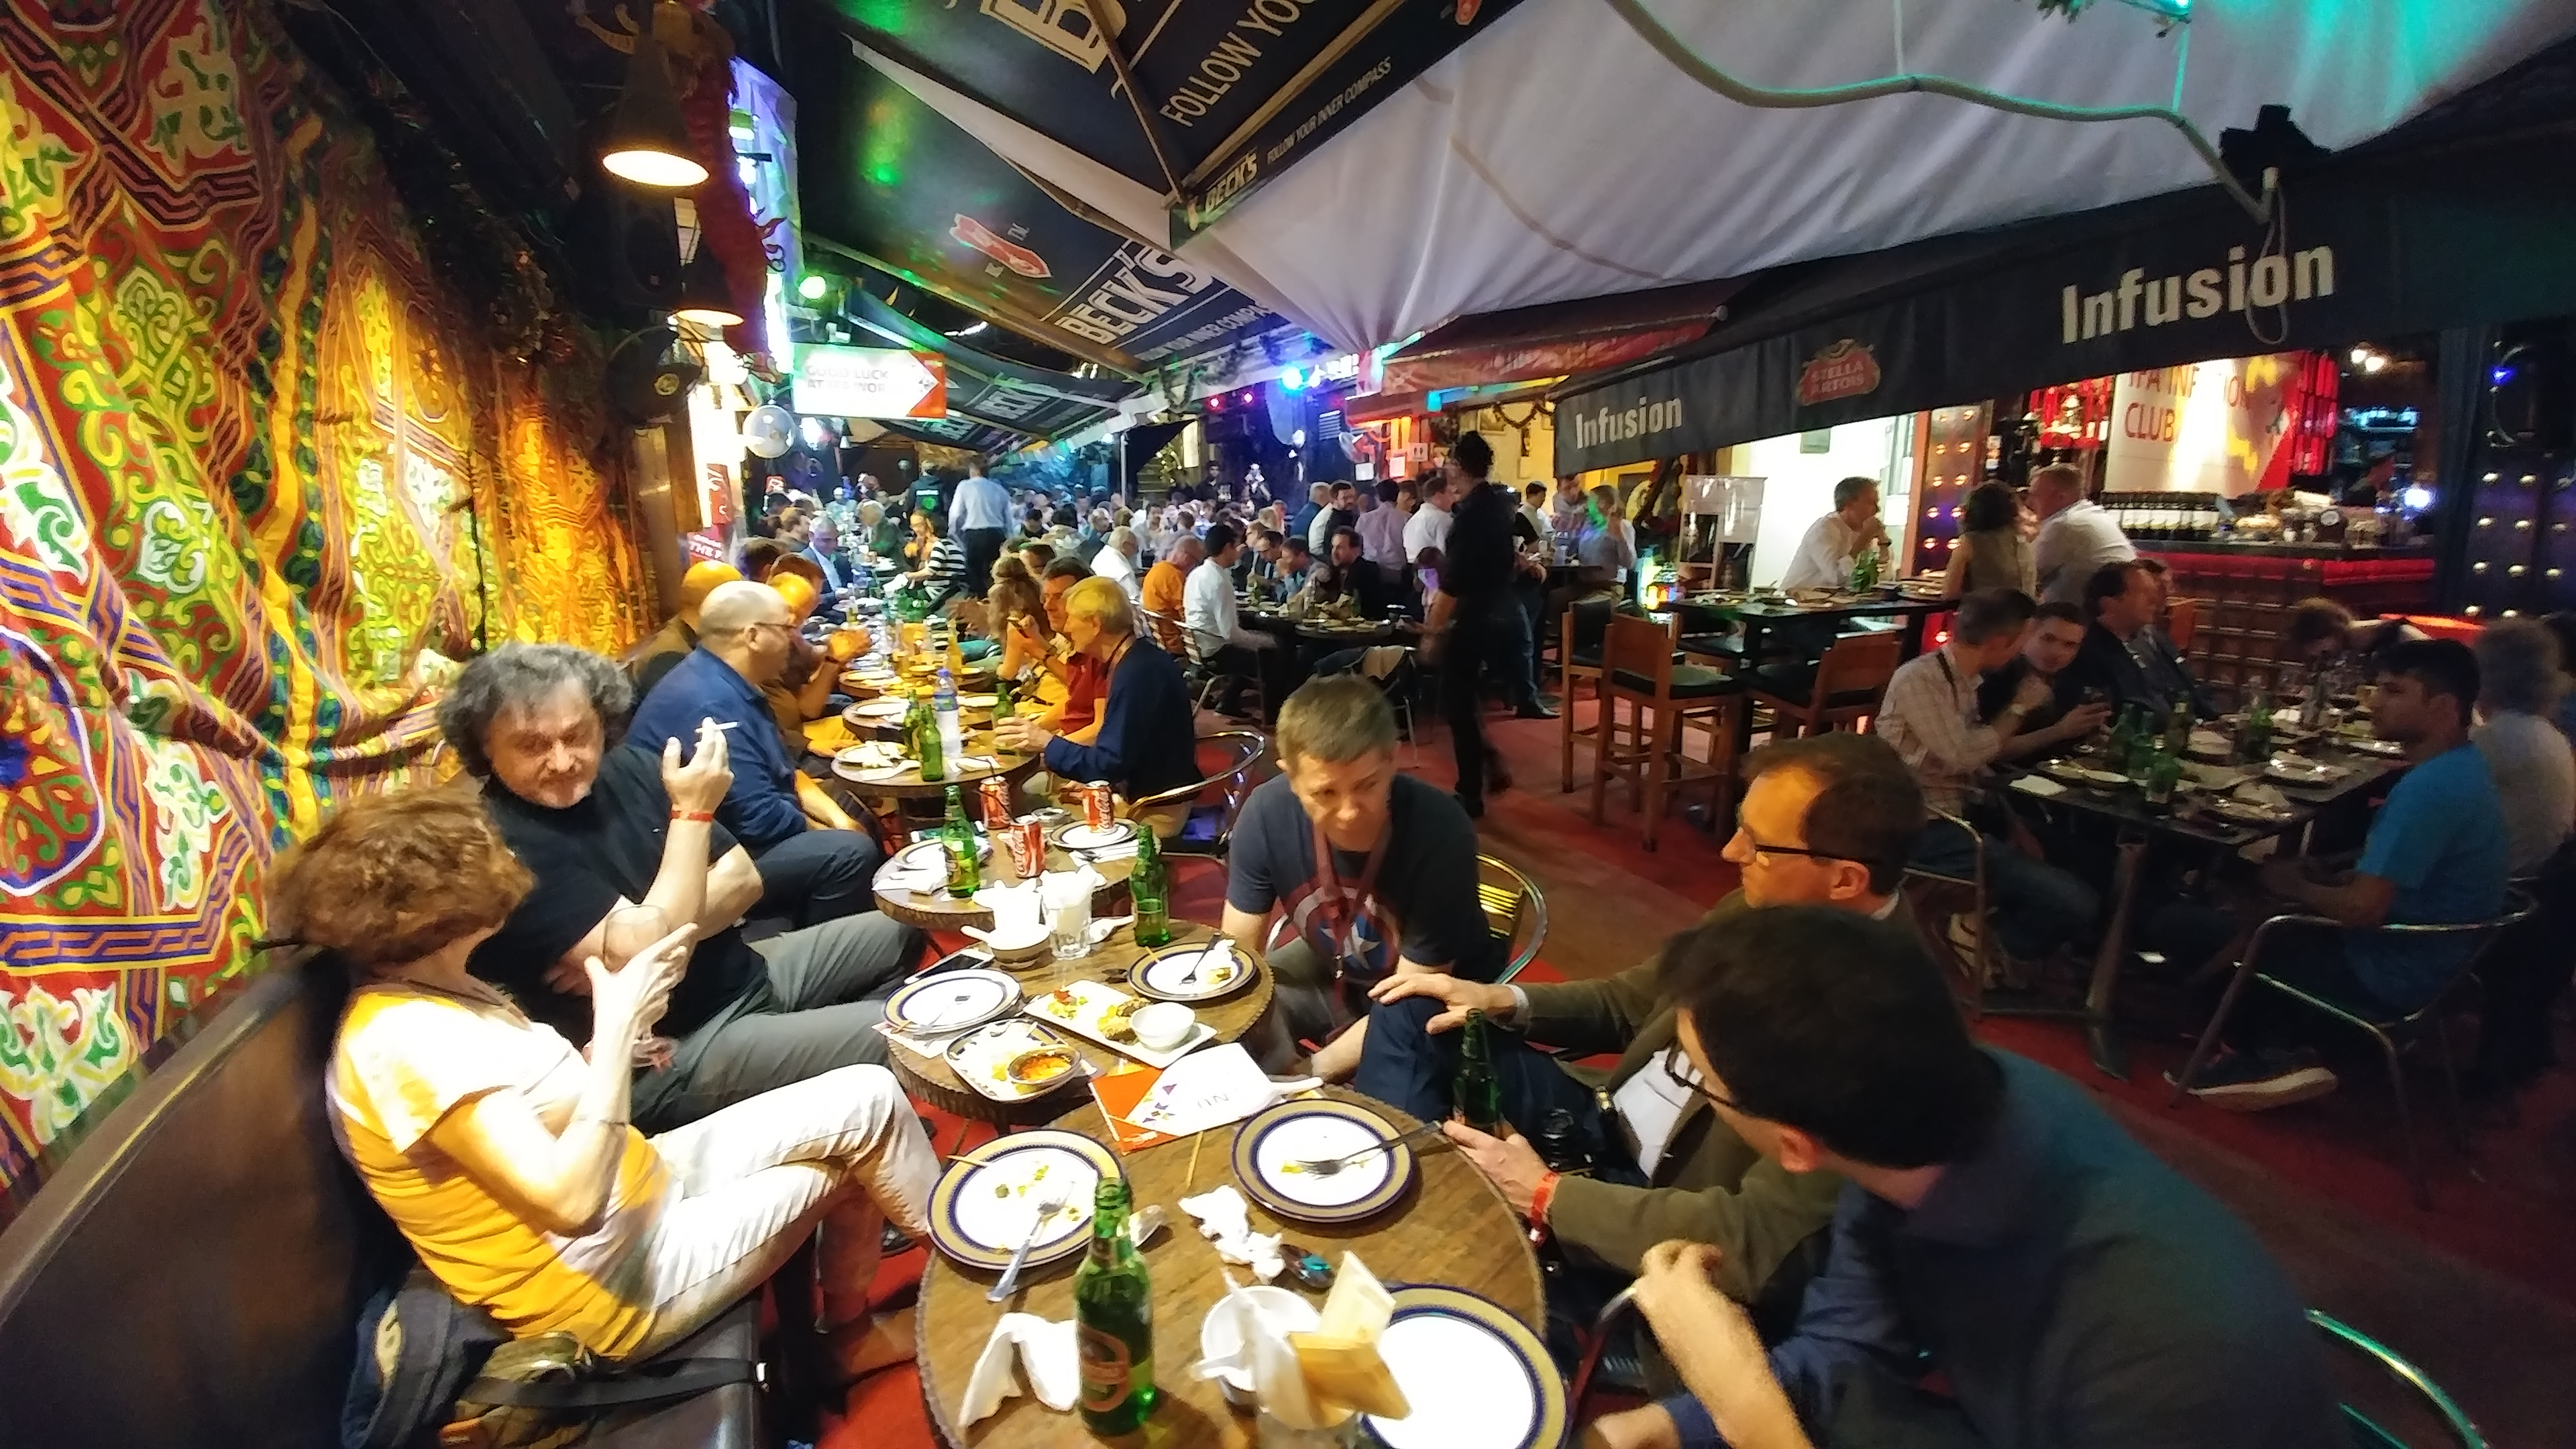 Hong Kong Bar district was a wild bazaar mixed with cultures of the world